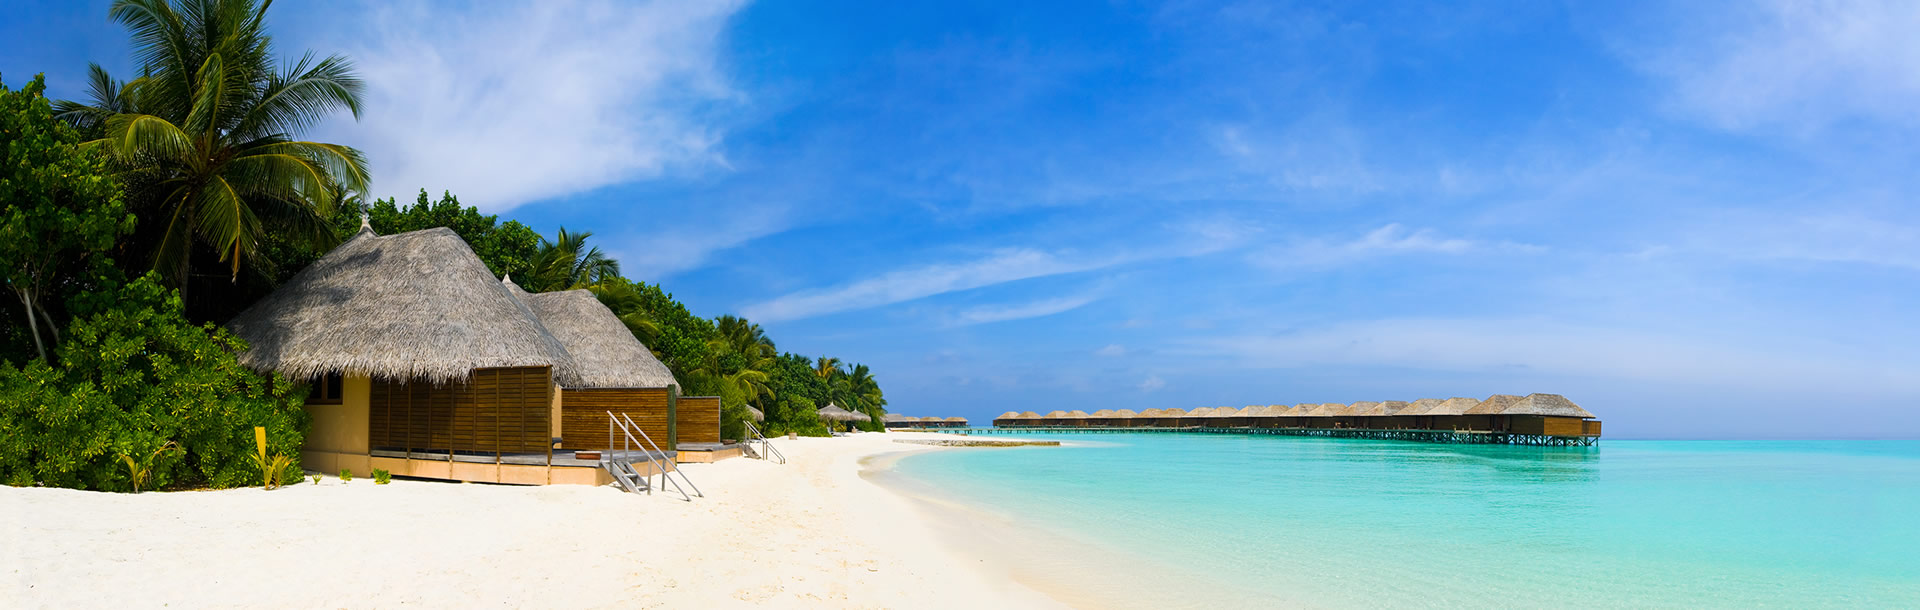 Travel Insurance Services The Maldives Beach Villas